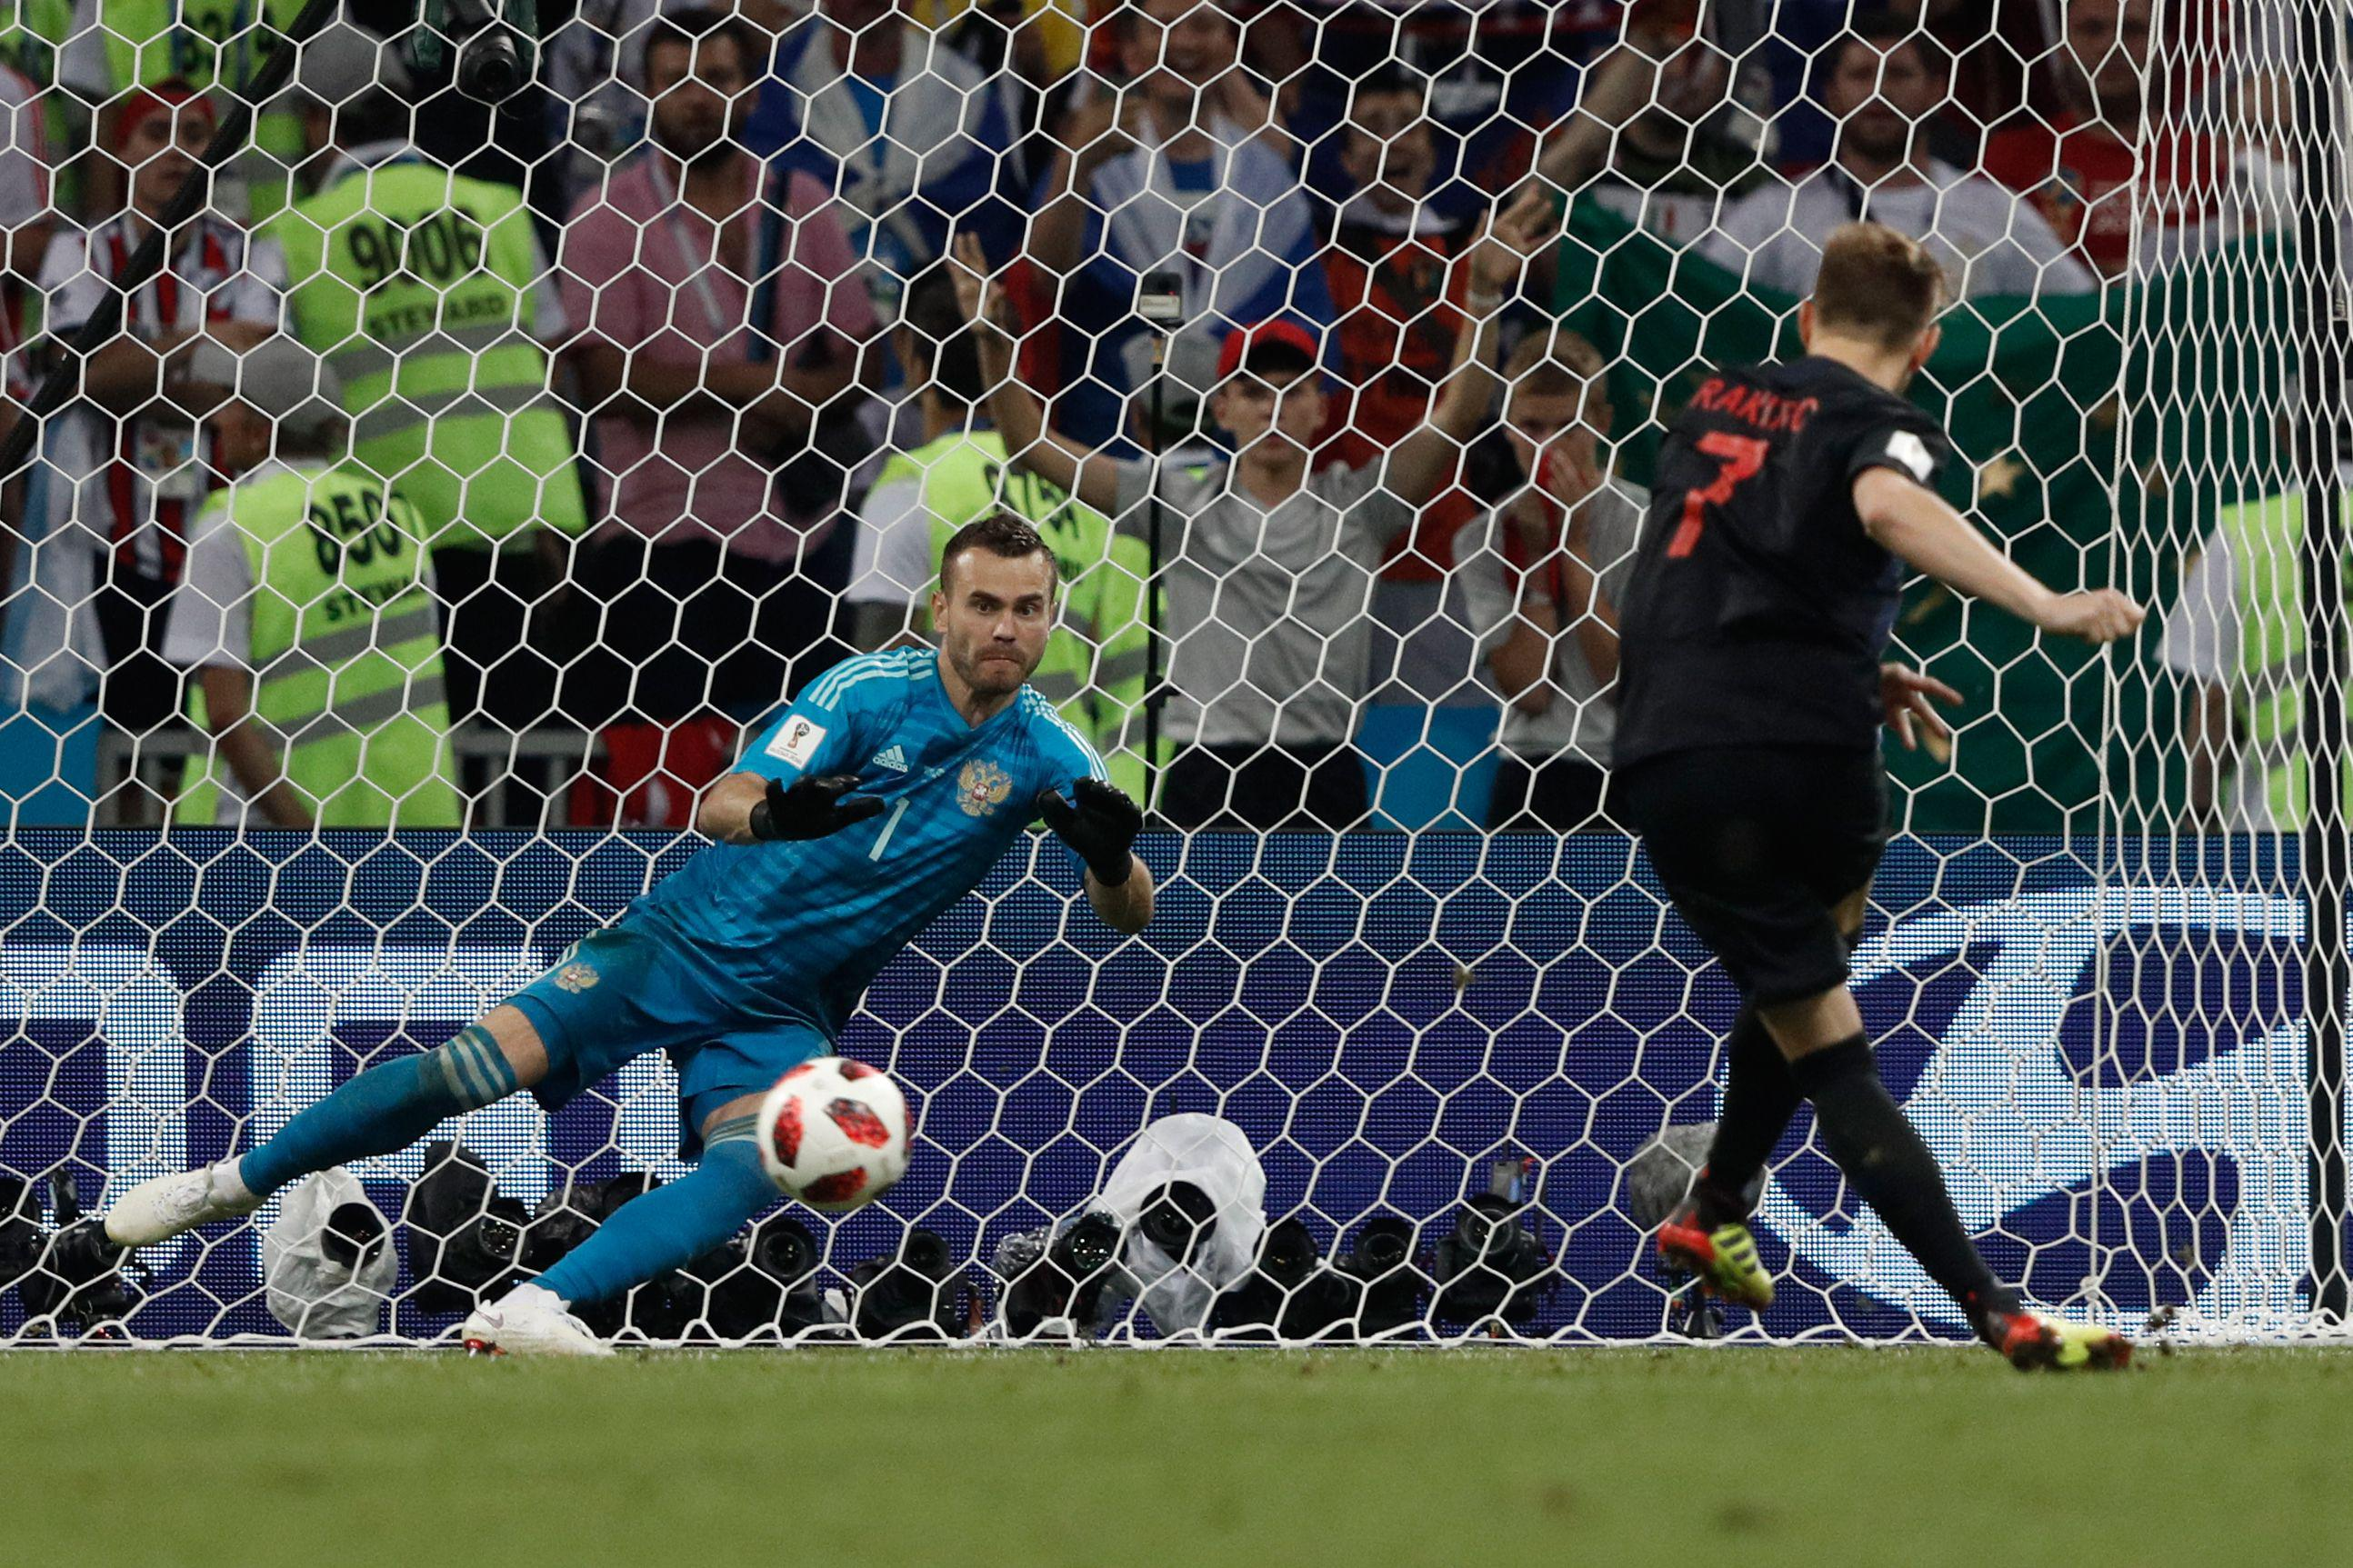 Croatia's midfielder Ivan Rakitic (R) scores his penalty past Russia's goalkeeper Igor Akinfeev during the Russia 2018 World Cup quarter-final football match between Russia and Croatia at the Fisht Stadium in Sochi on July 7, 2018. (Photo by Adrian DENNIS / AFP) / RESTRICTED TO EDITORIAL USE - NO MOBILE PUSH ALERTS/DOWNLOADS        (Photo credit should read ADRIAN DENNIS/AFP/Getty Images)